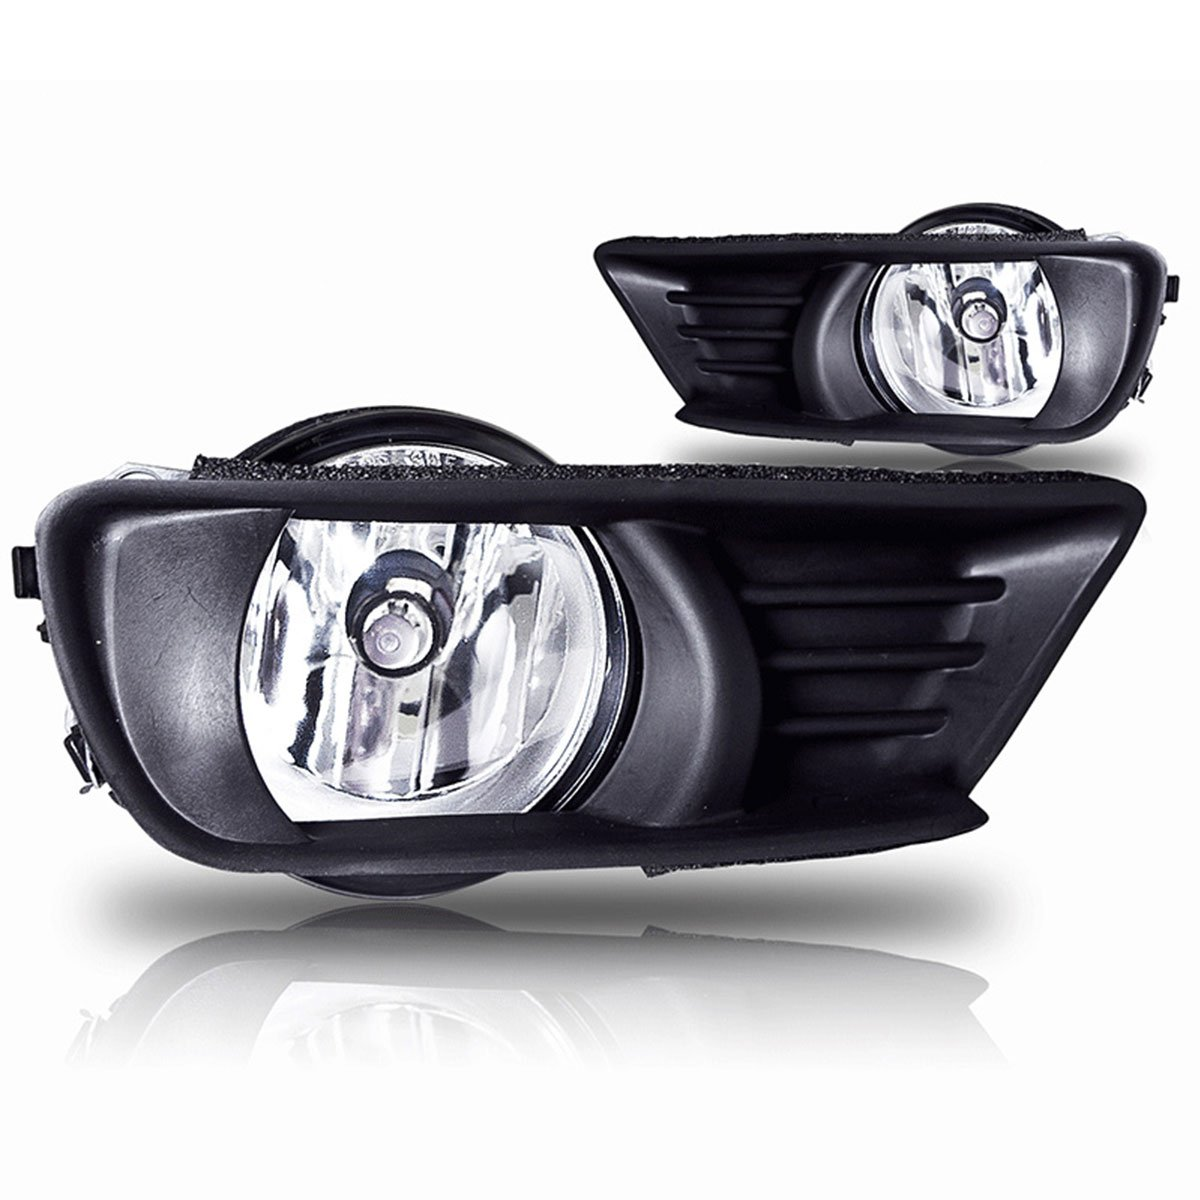 Amazon.com: 07-09 Toyota Camry Oem Fog Light - Clear (Wiring Kit Included)  (Pair): Automotive